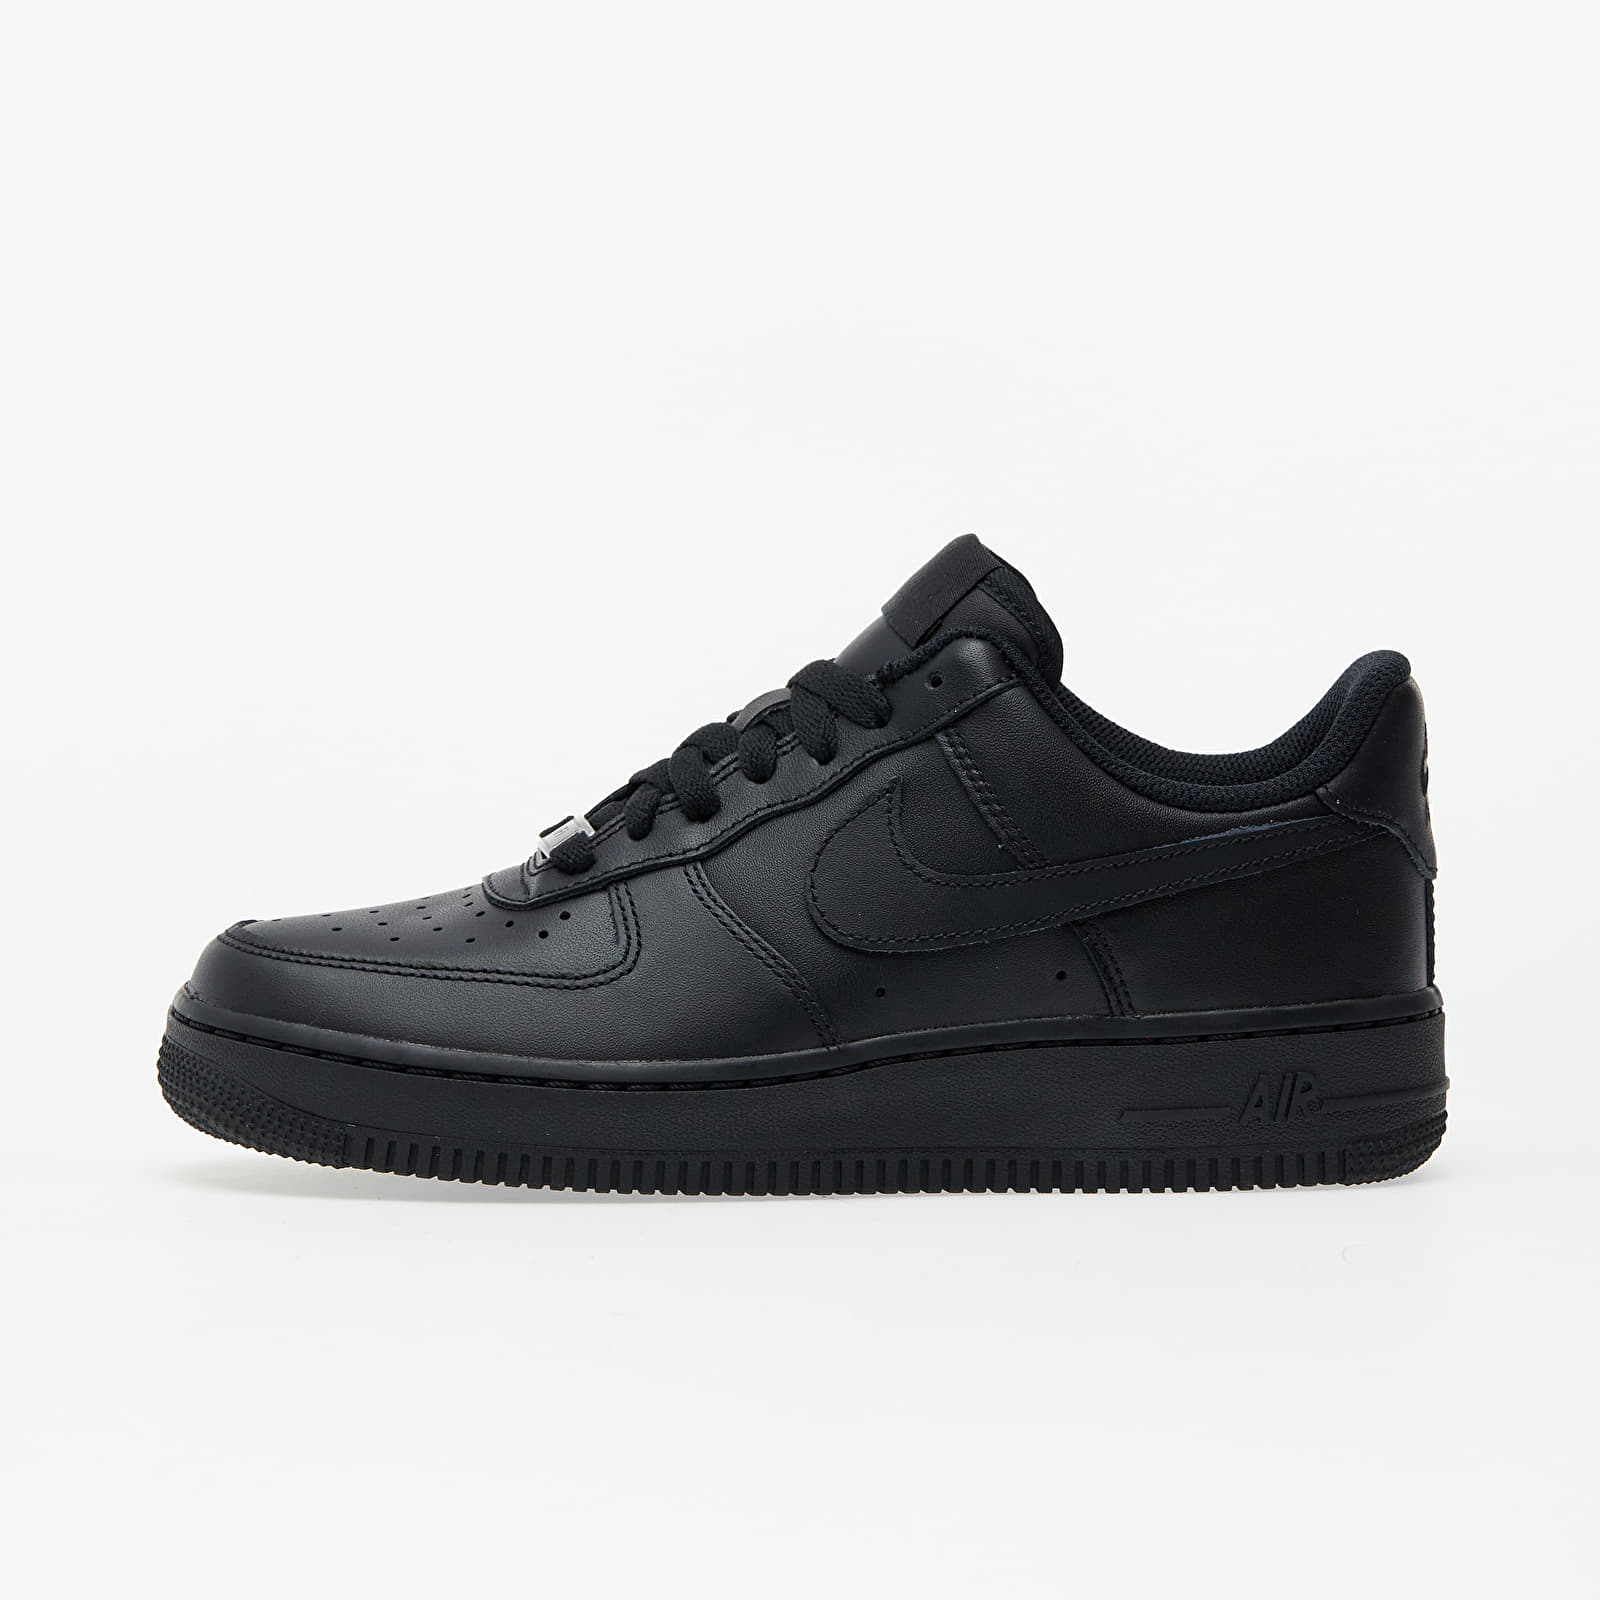 Nike Wmns Air Force 1 '07 Black/ Black EUR 36